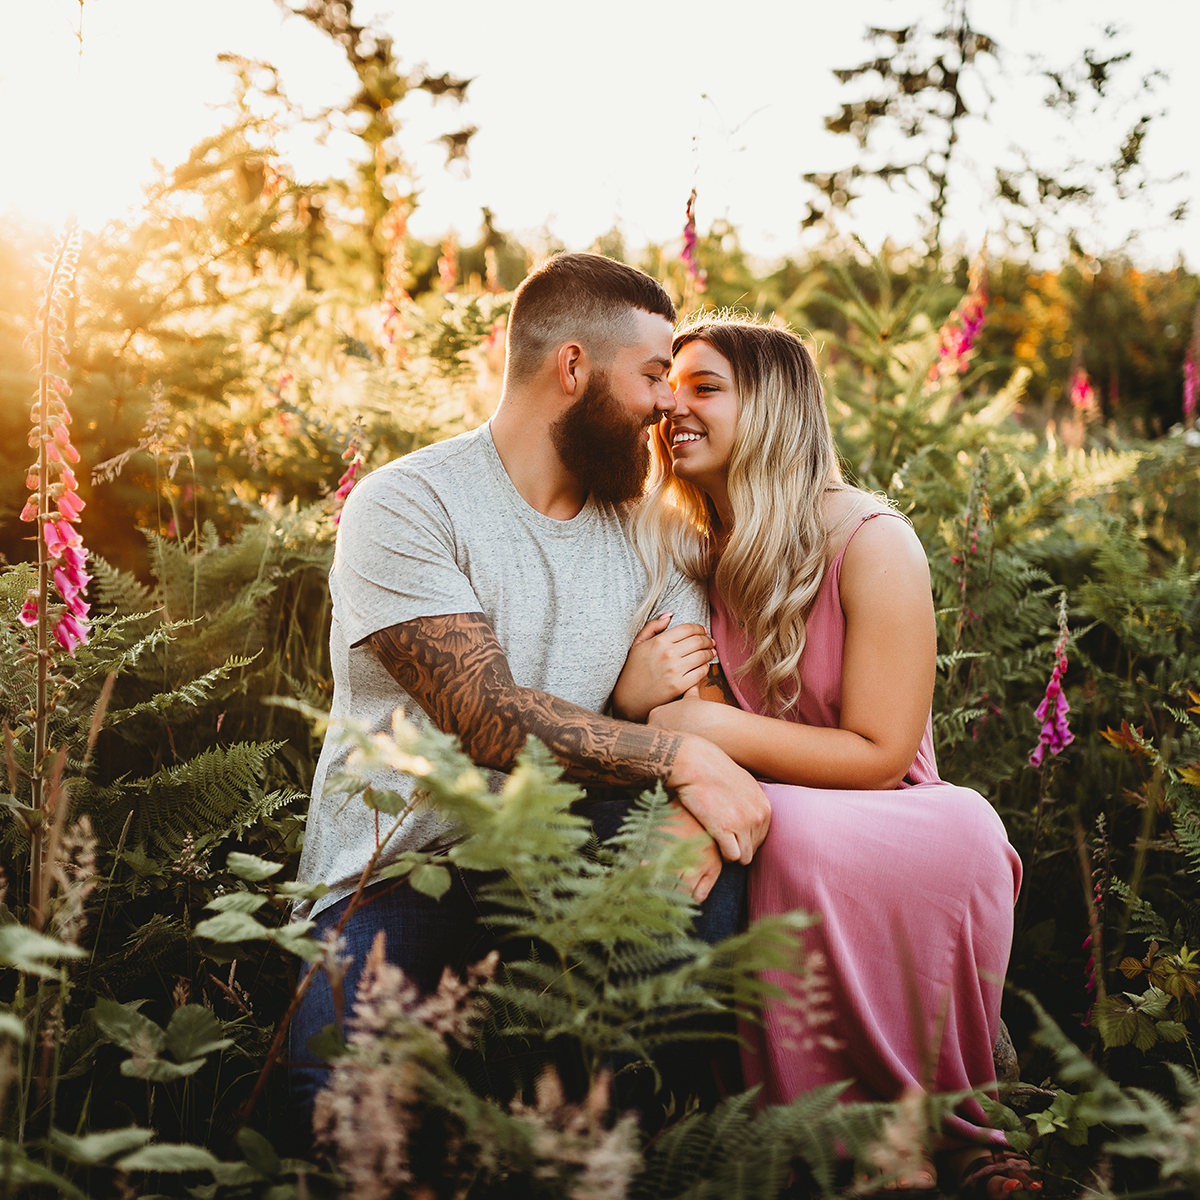 Brittingham Photography Engagement Couples Shoot Orting Puyallup Tacoma Sumner Seattle Washington 3.jpg